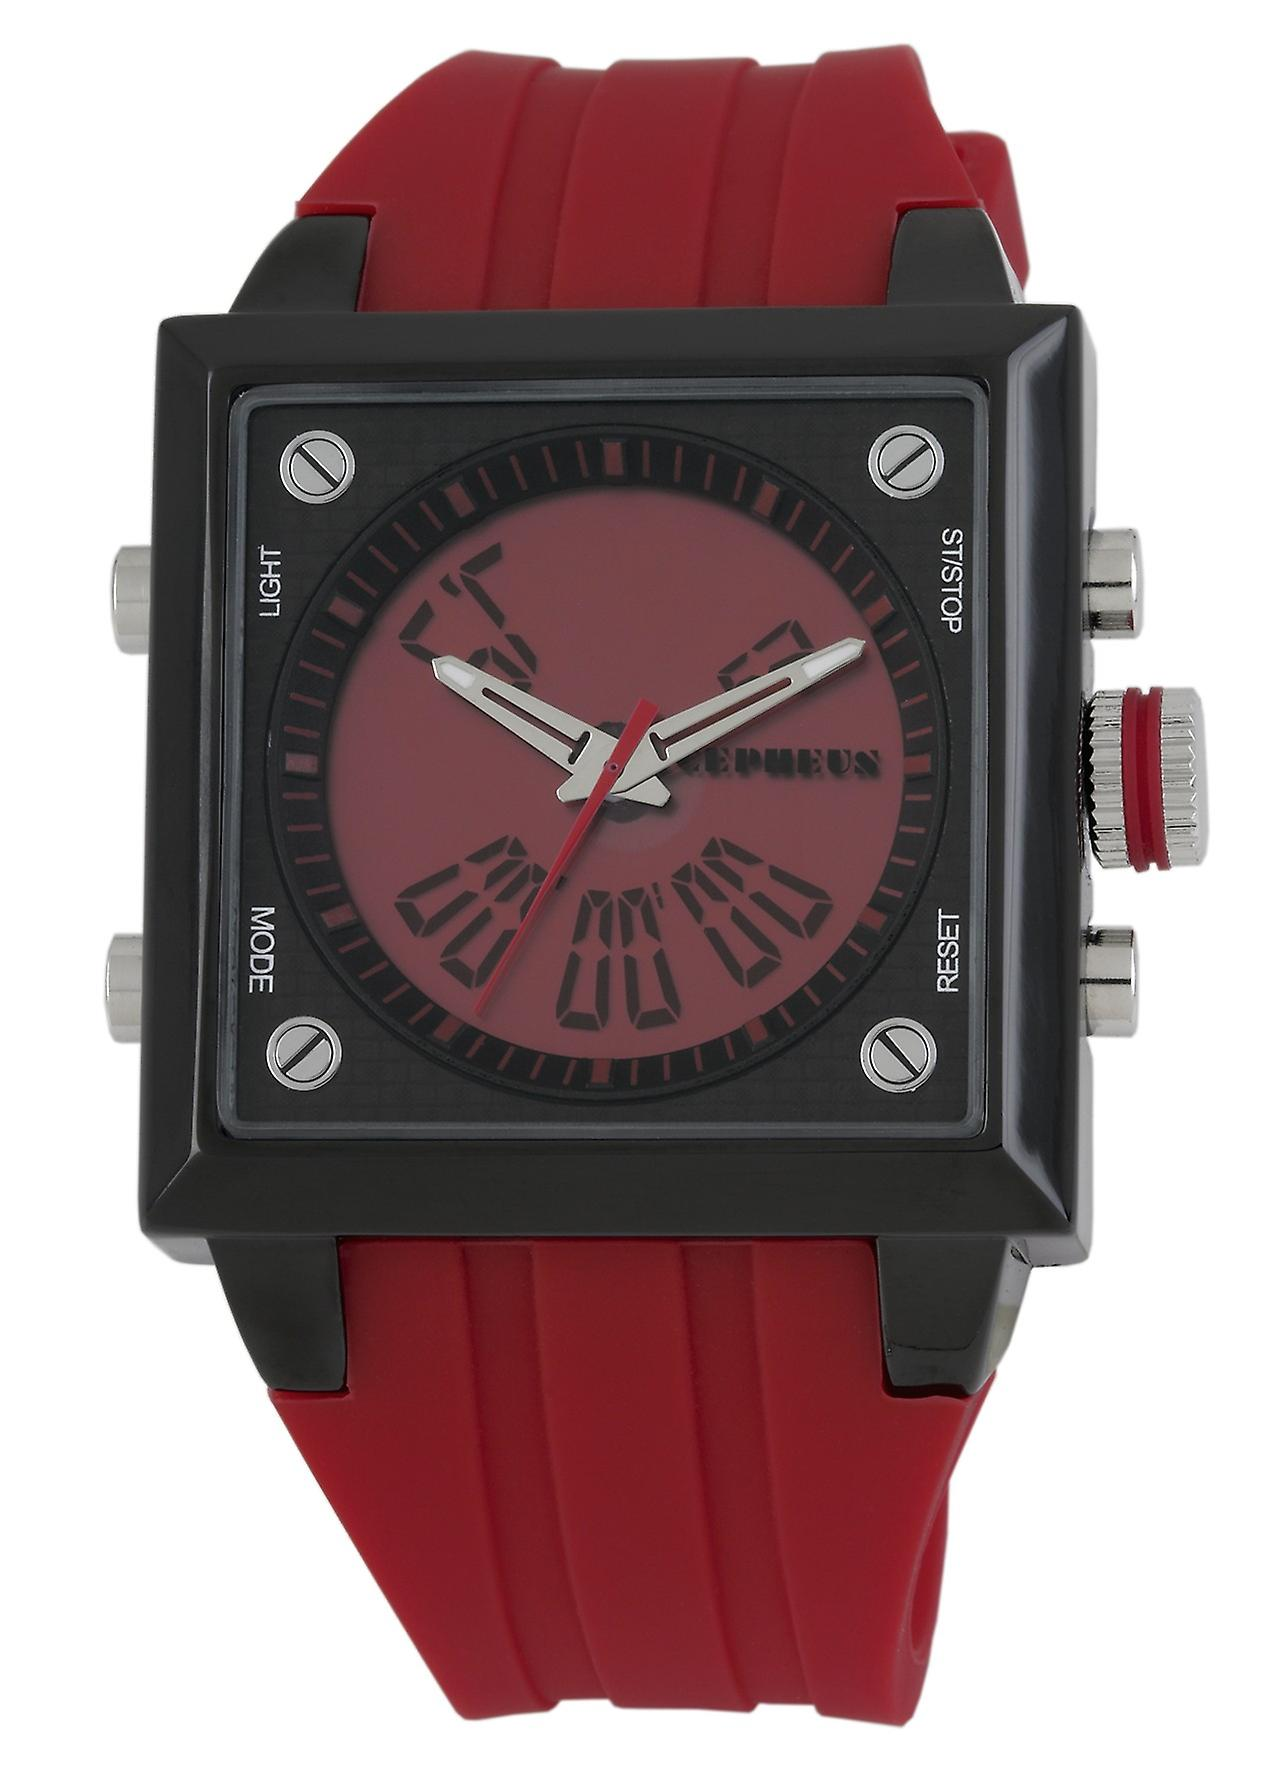 CEPHEUS gents watch analogue-digital CP900-644